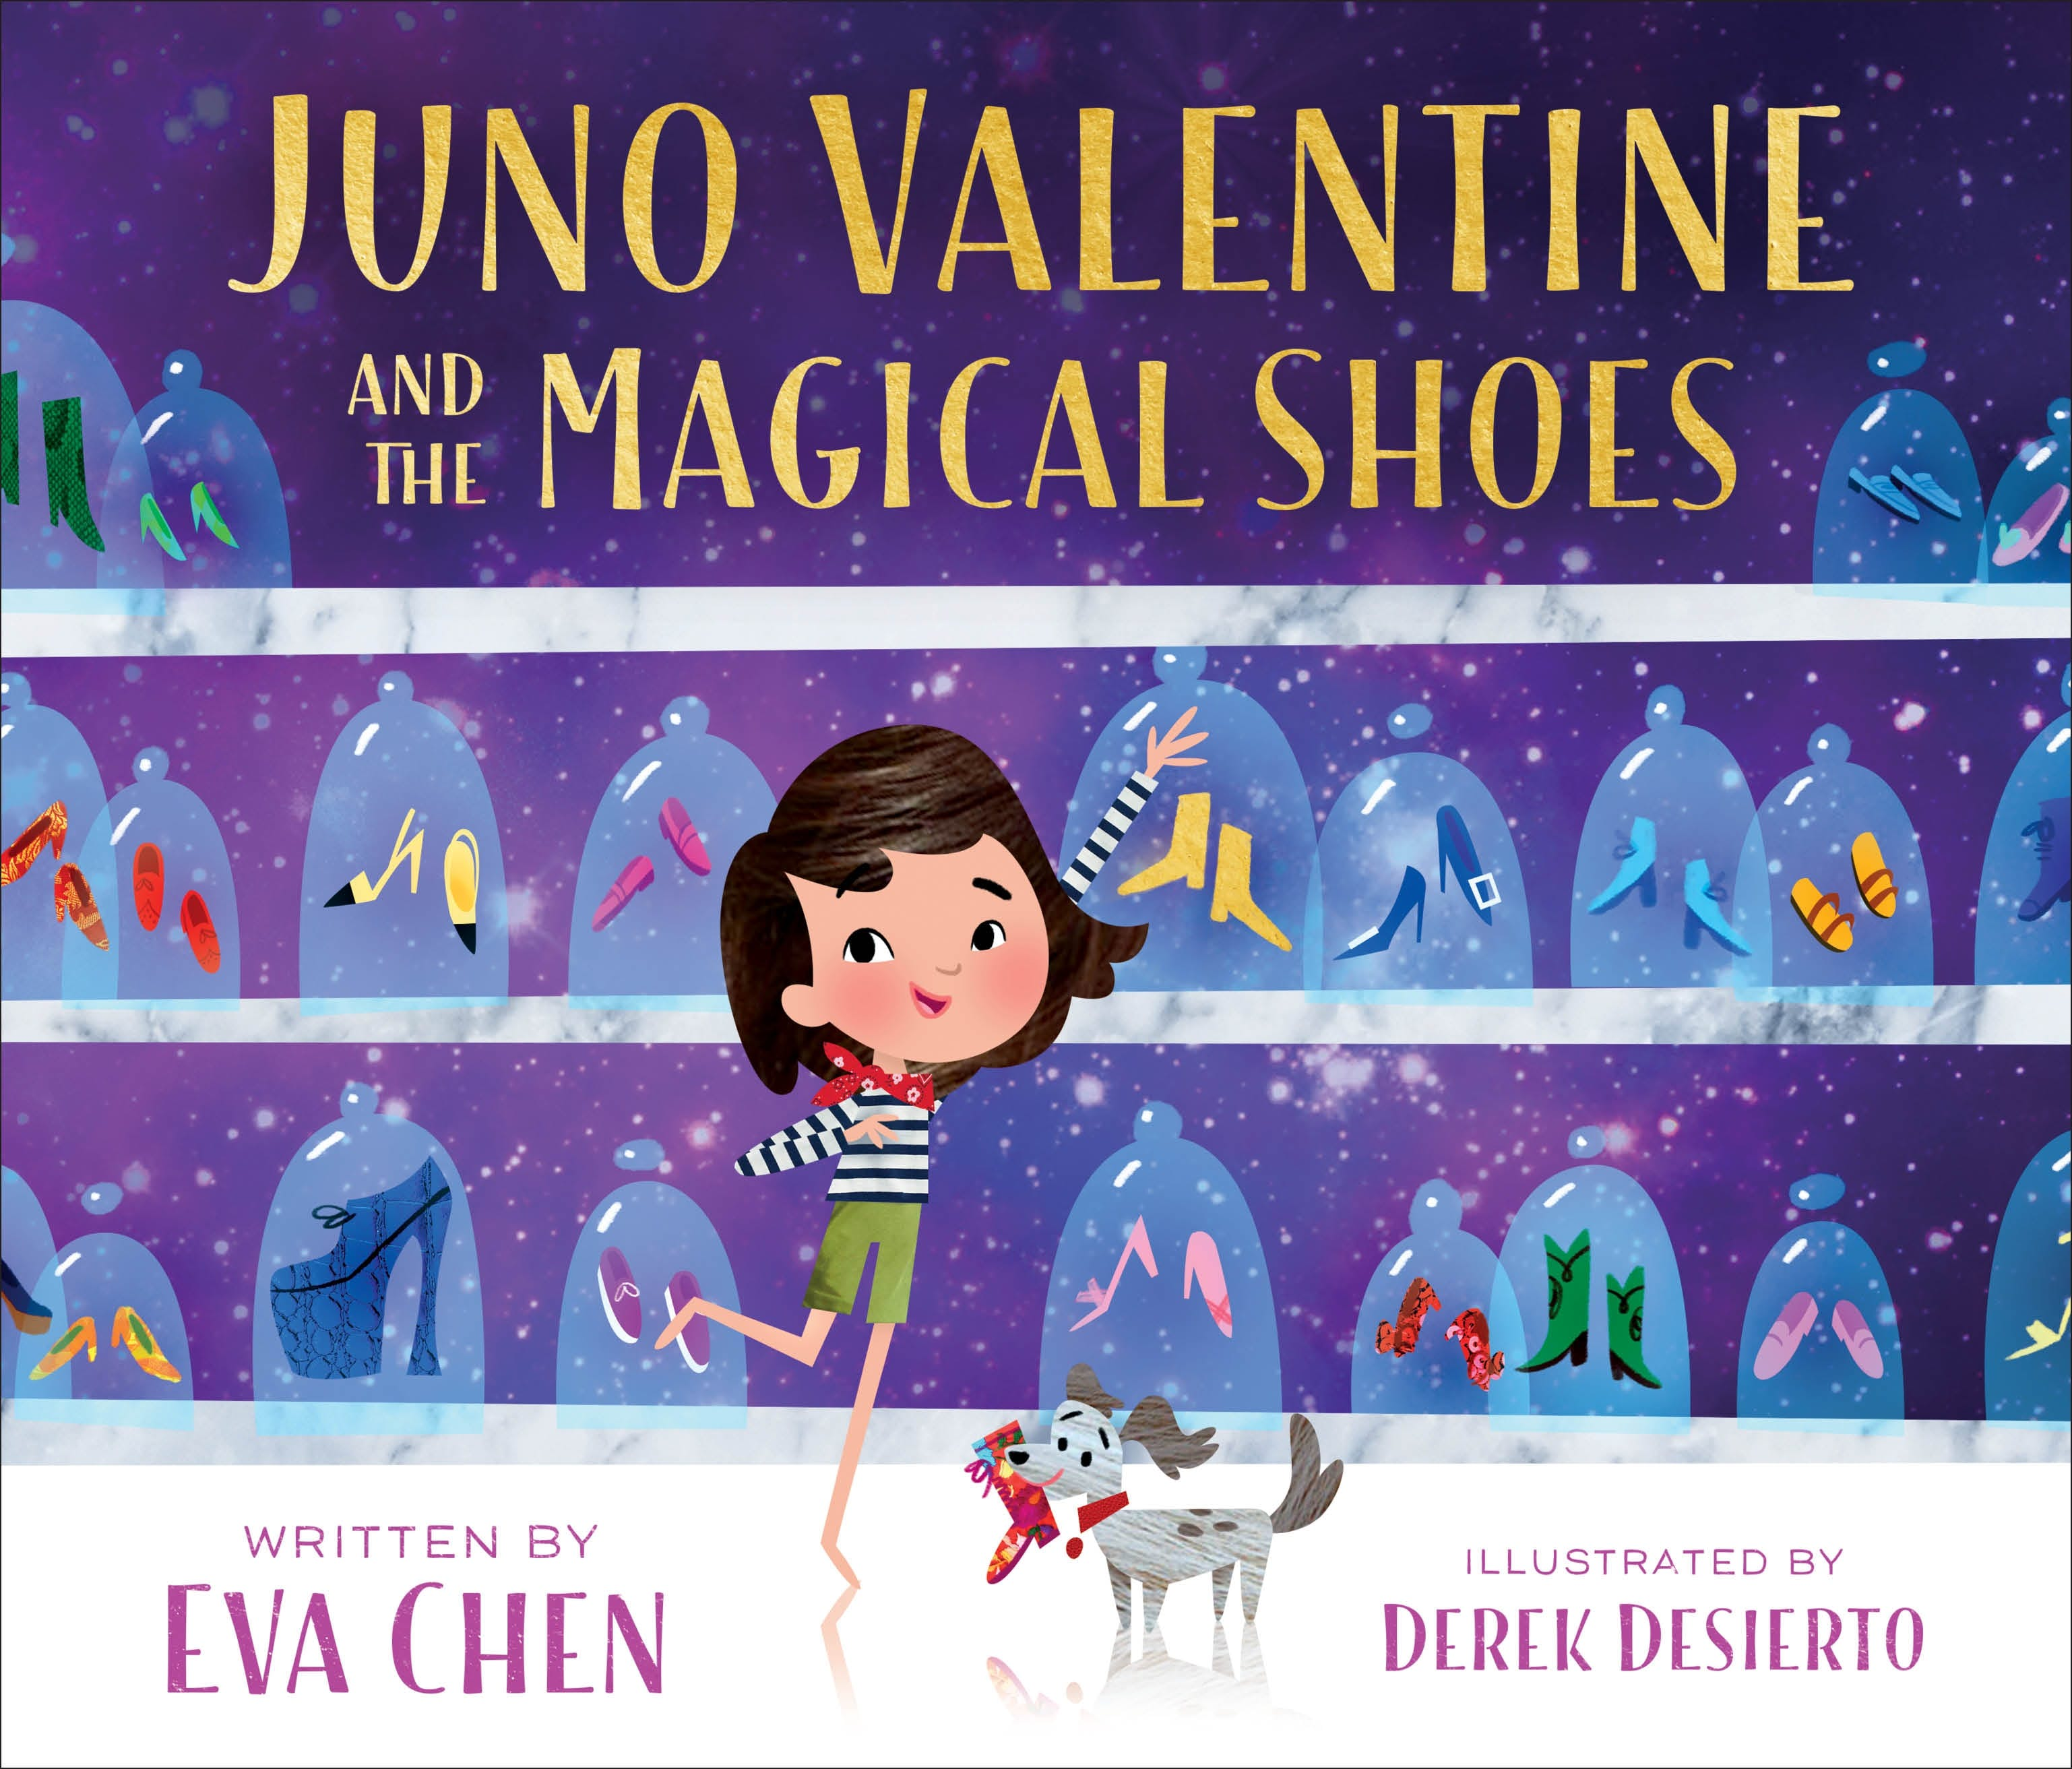 Image of Juno Valentine and the Magical Shoes